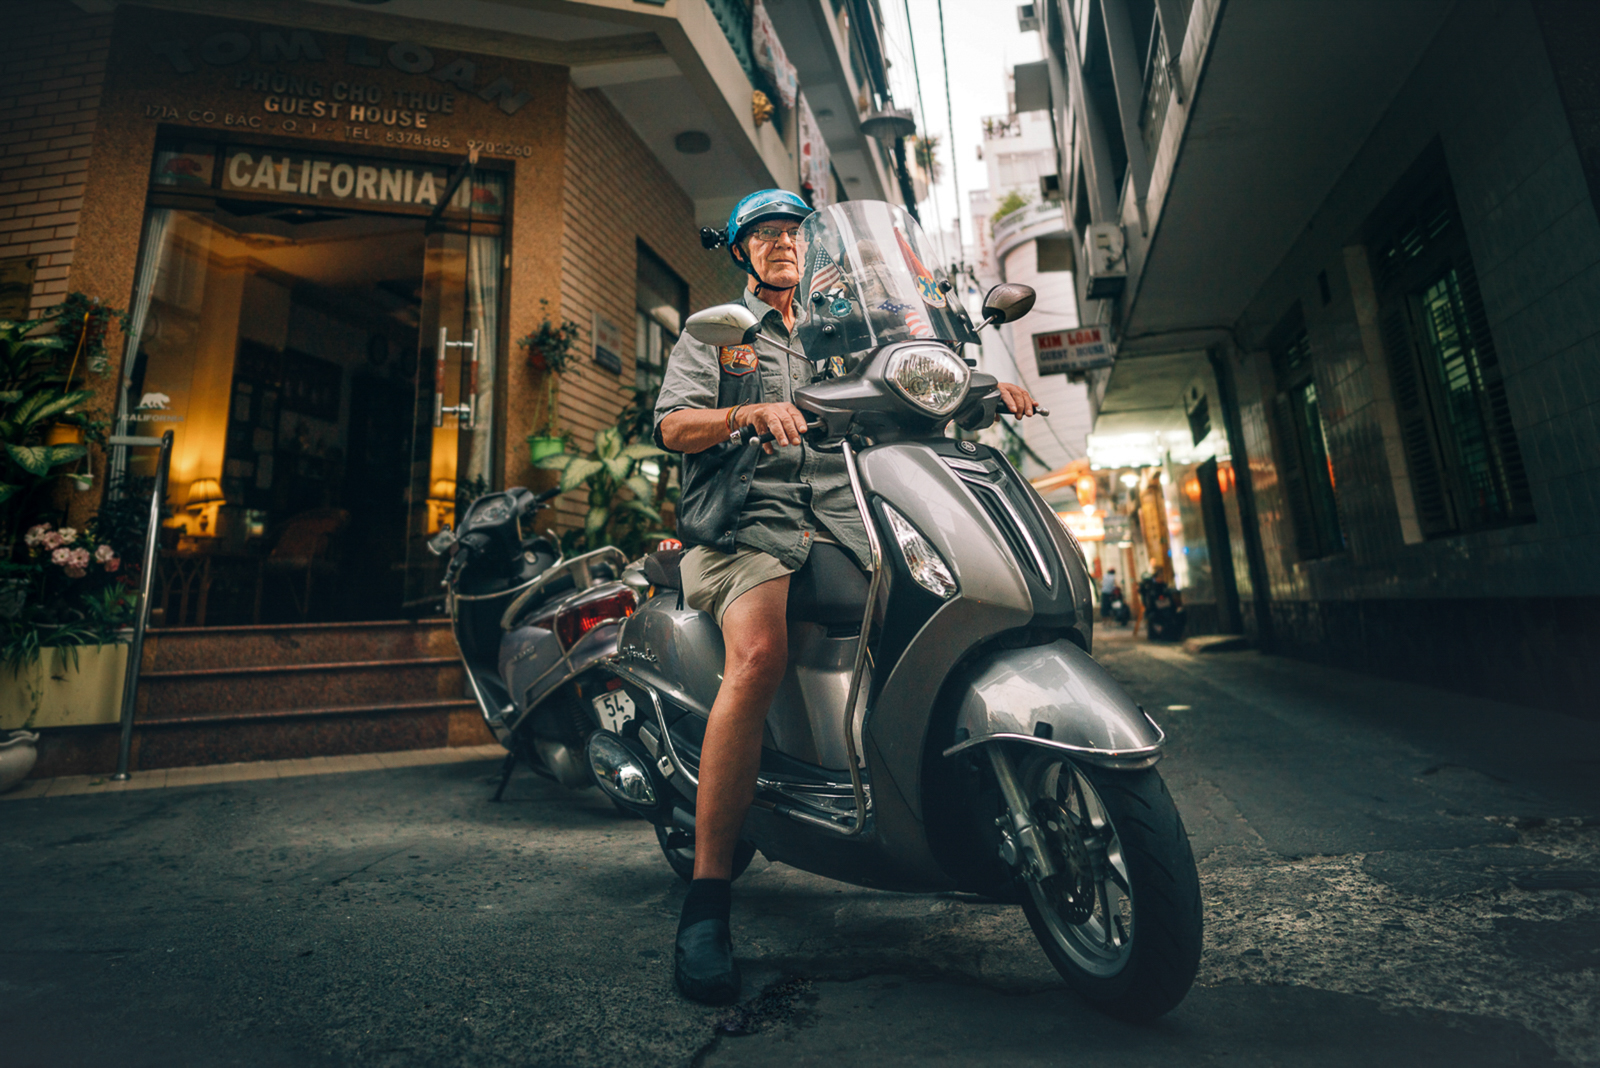 "When Bill does not live with his Vietnamese family in Cam Ranh or at Hotel California in Ho Chi Minh City, he travels on his scooter to the places where Americans were stationed as young men during the war. For years, he has been riding his motorbike through Vietnam, filming places from the past for his Veteran mates back at home in the United States with a camera installed in his helmet. ""Vietnam: Through the eyes of my brothers and sisters"" is the name of the Facebook group with more than 600 members to which he uploads the endless stream of photos and videos of today's Vietnam. The restlessness keeps Bill in the present."